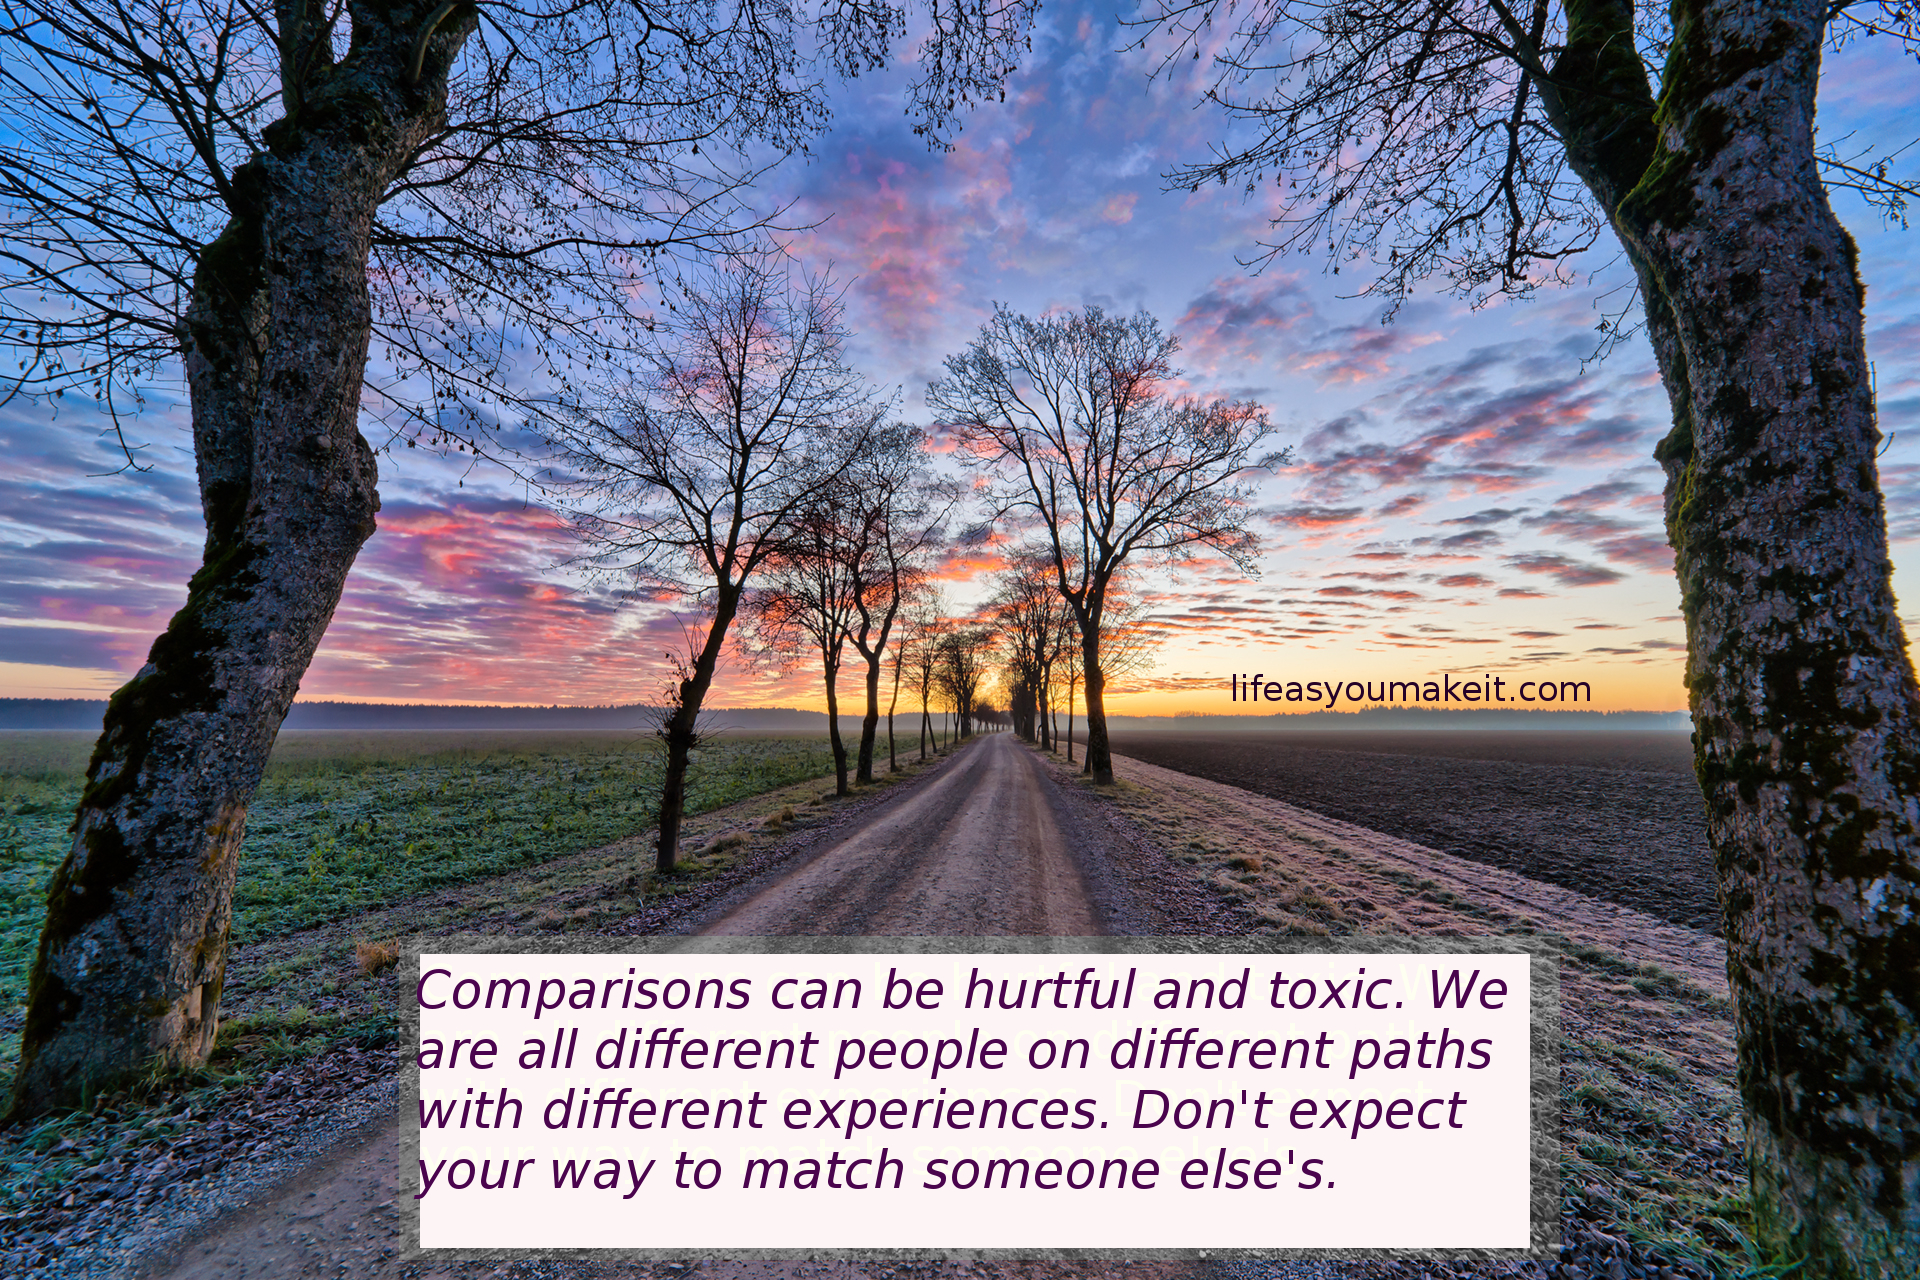 Comparisons can be hurtful and toxic. We are all different people on different paths with different experiences. Don't expect your way to match someone else's